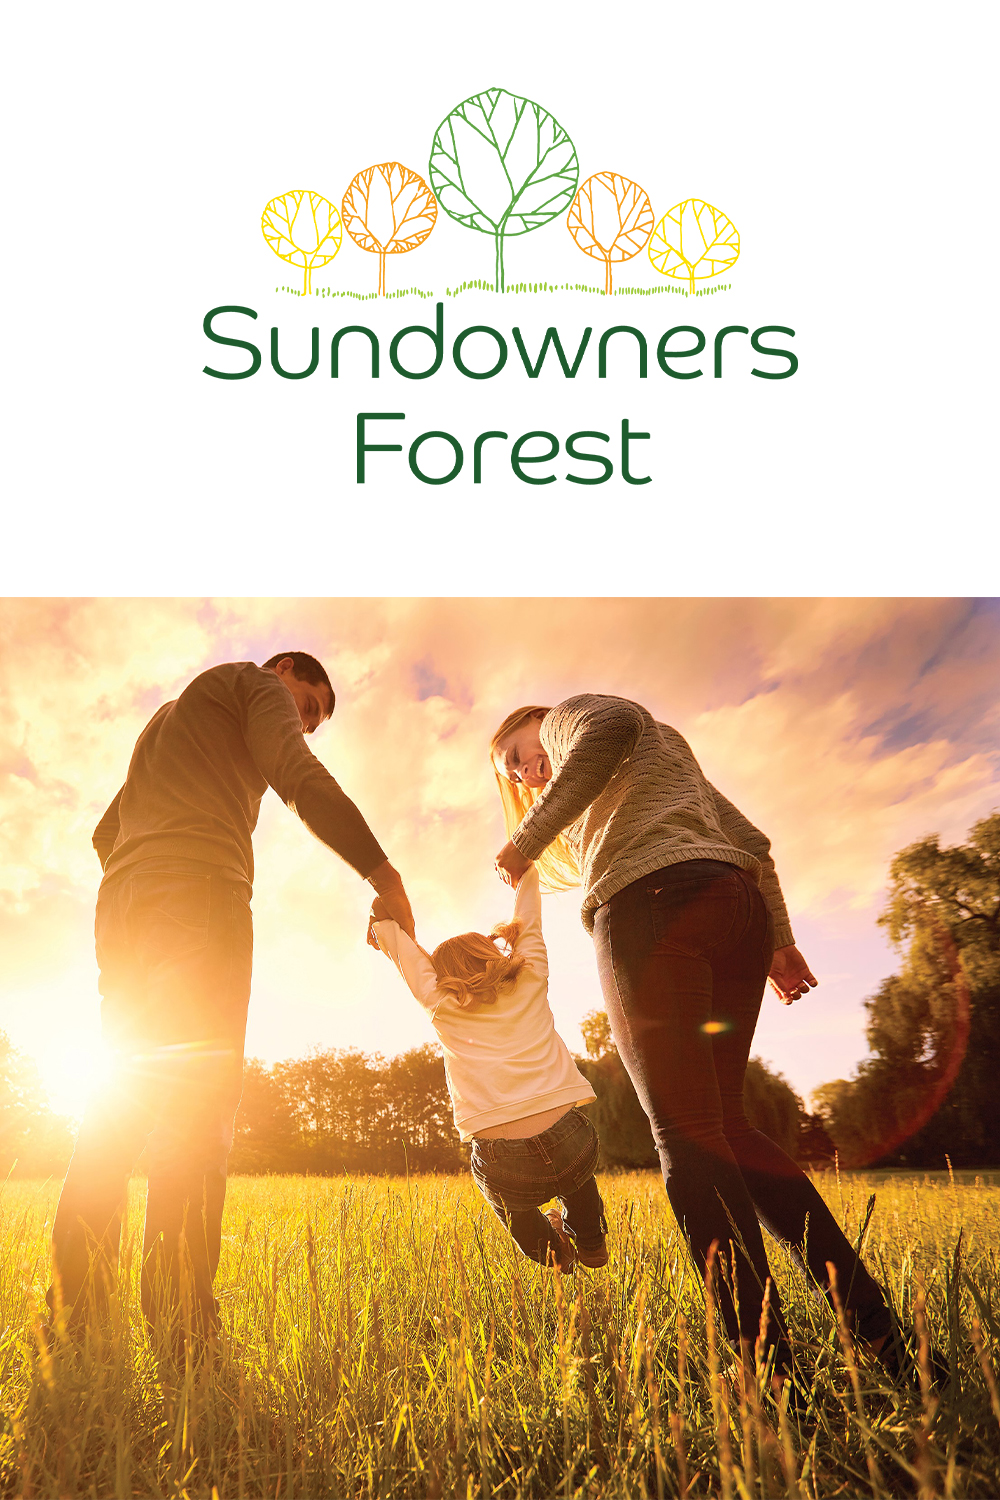 Sundowners Forest